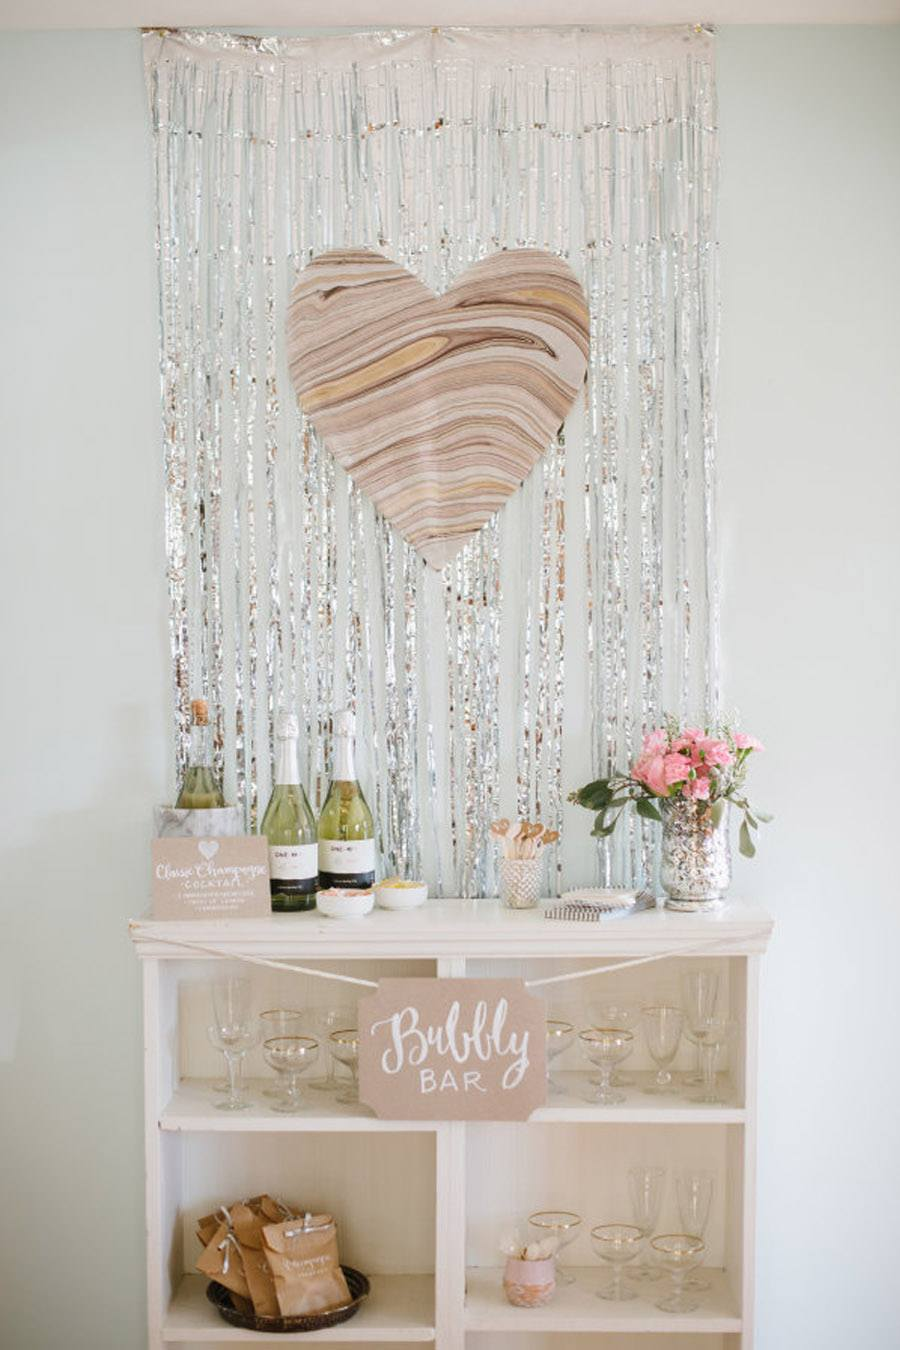 BUBBLY BAR bar-bubbly